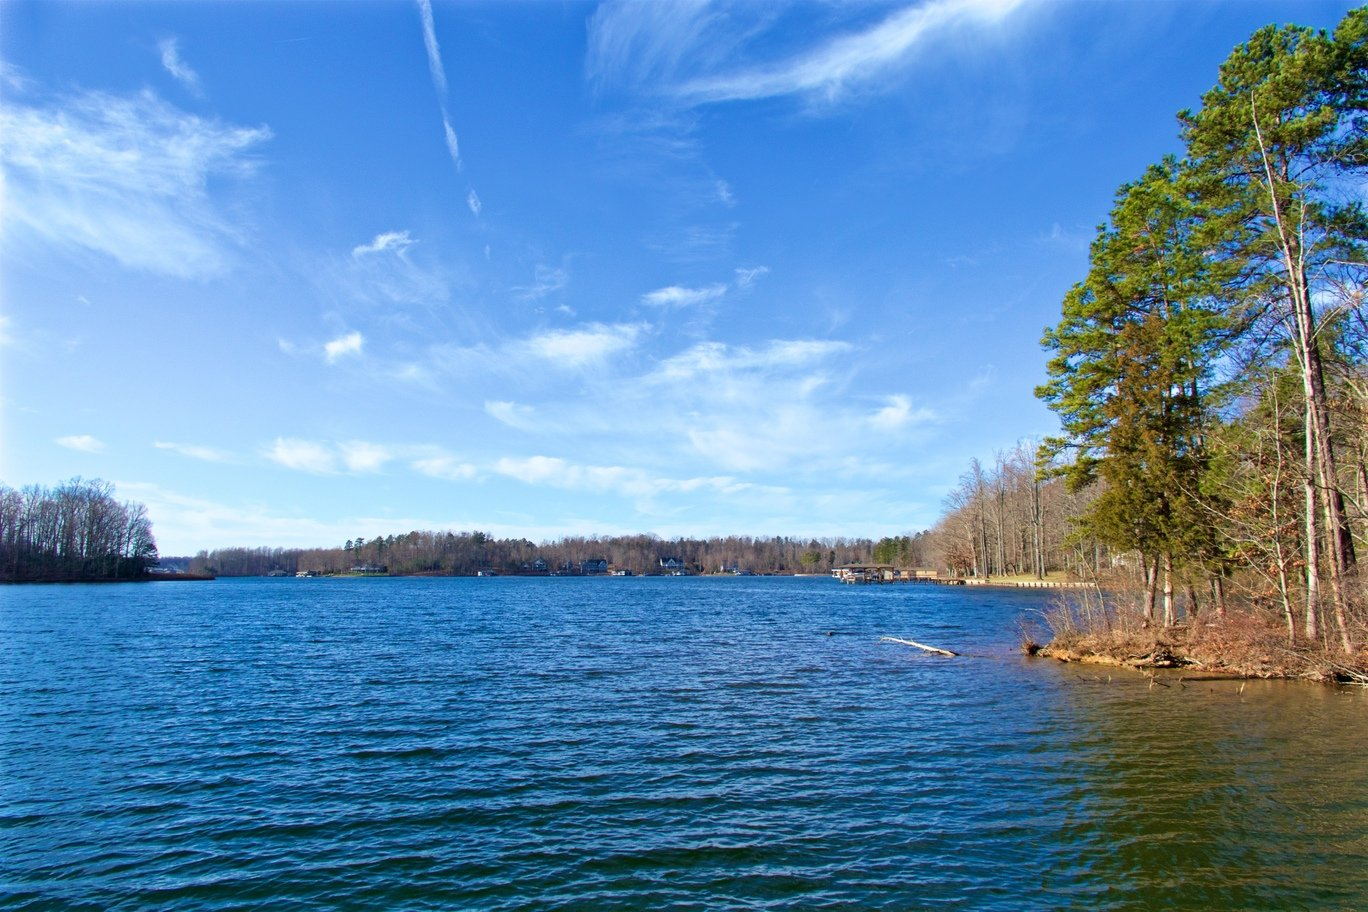 A view over the water of one of Virginia's top fishing spots, Lake Anna